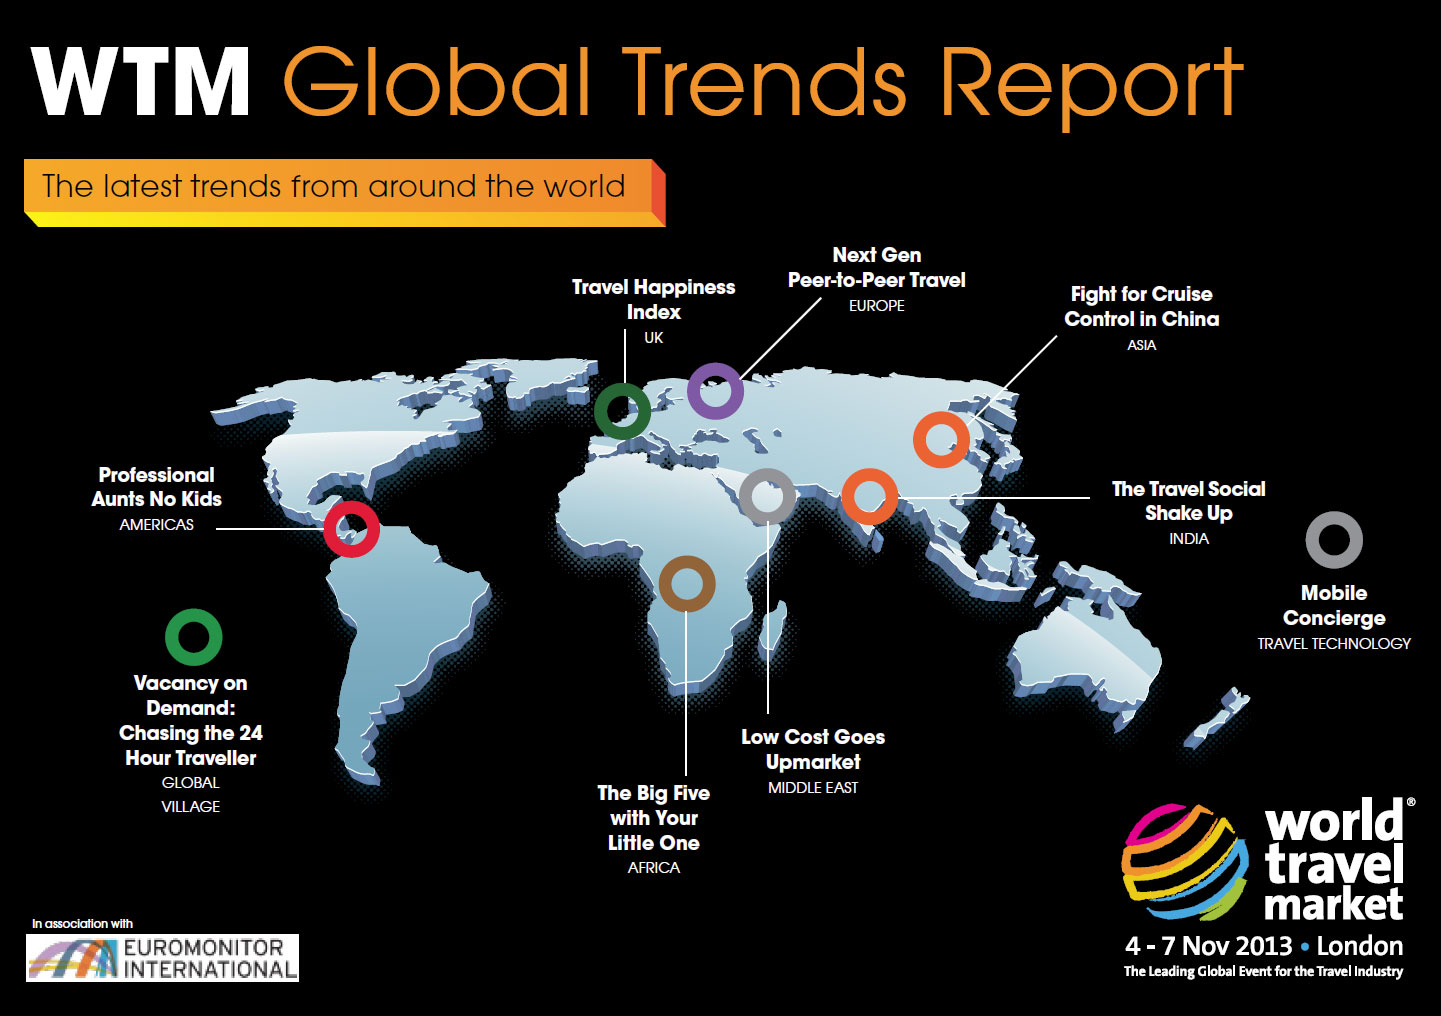 The impact of global trends on hospitality industry